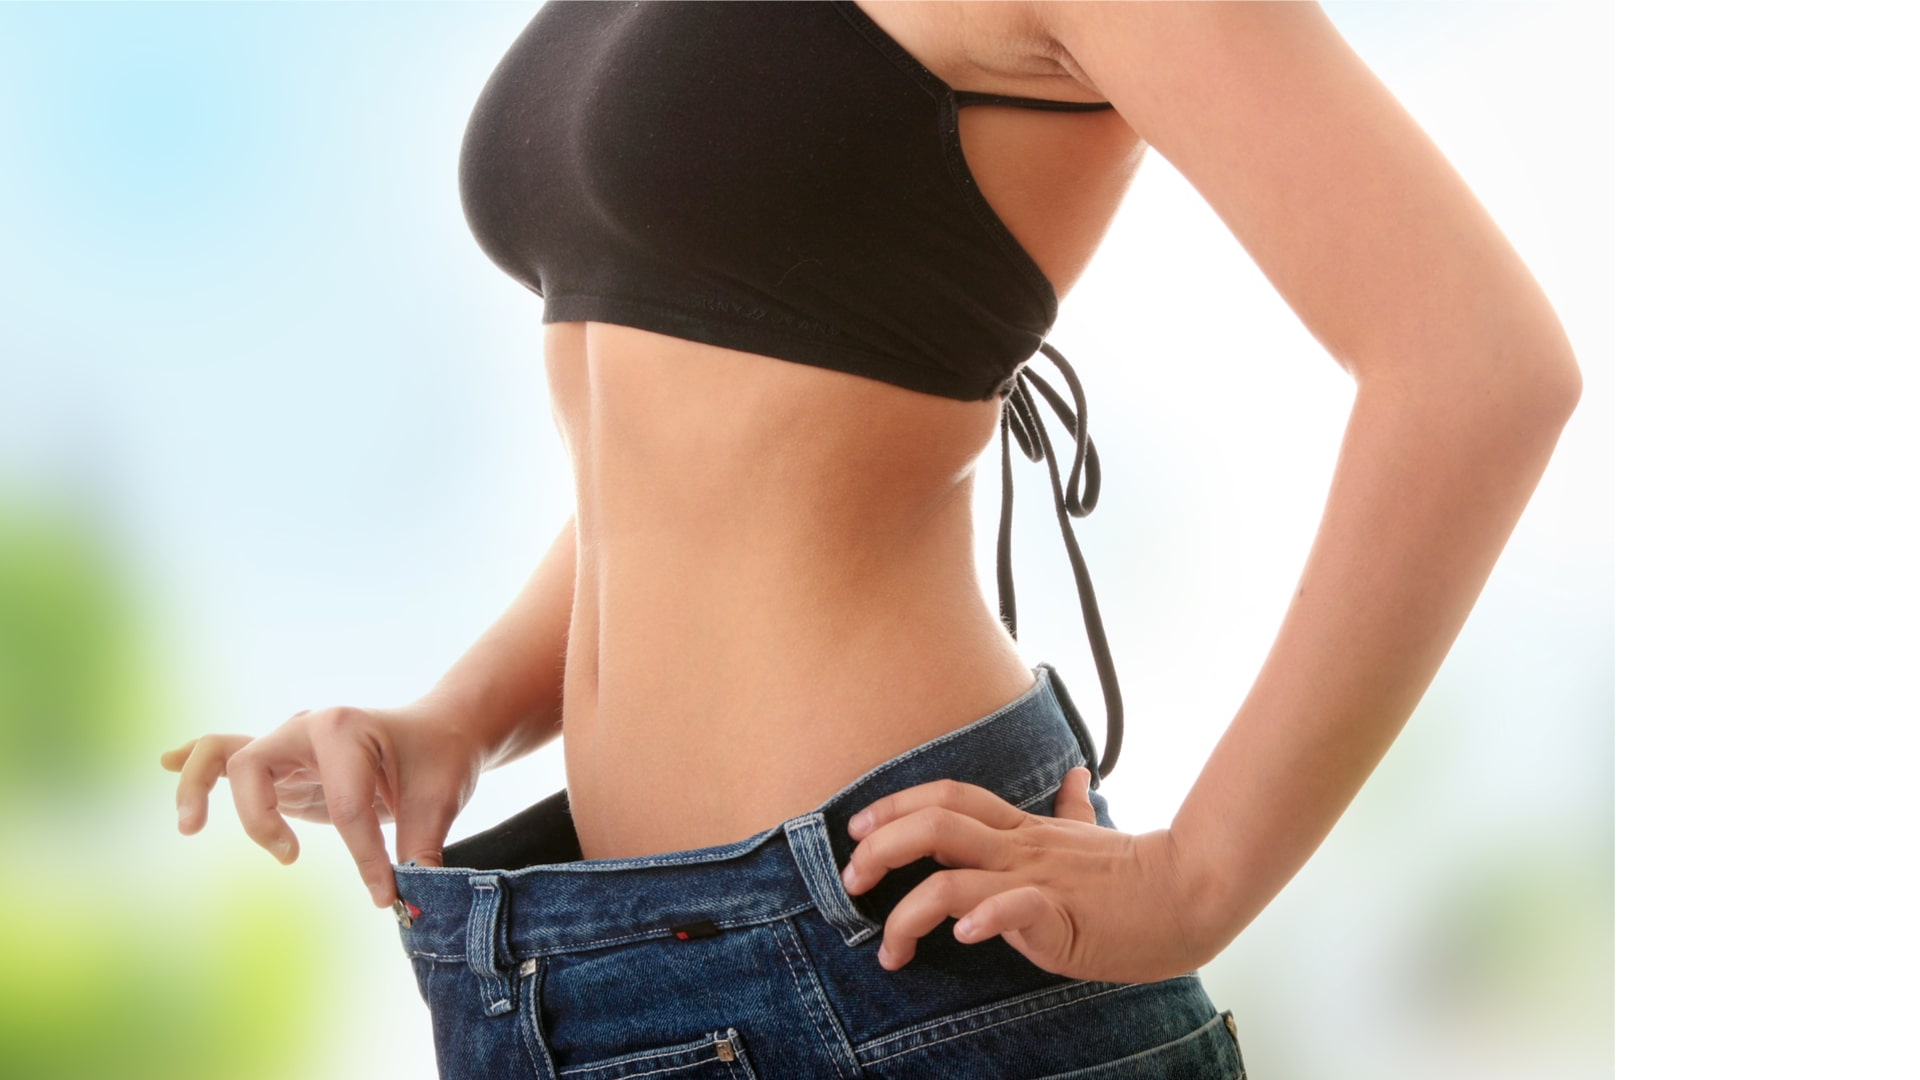 Medical Weight Loss Anti-aging Chicago clinic